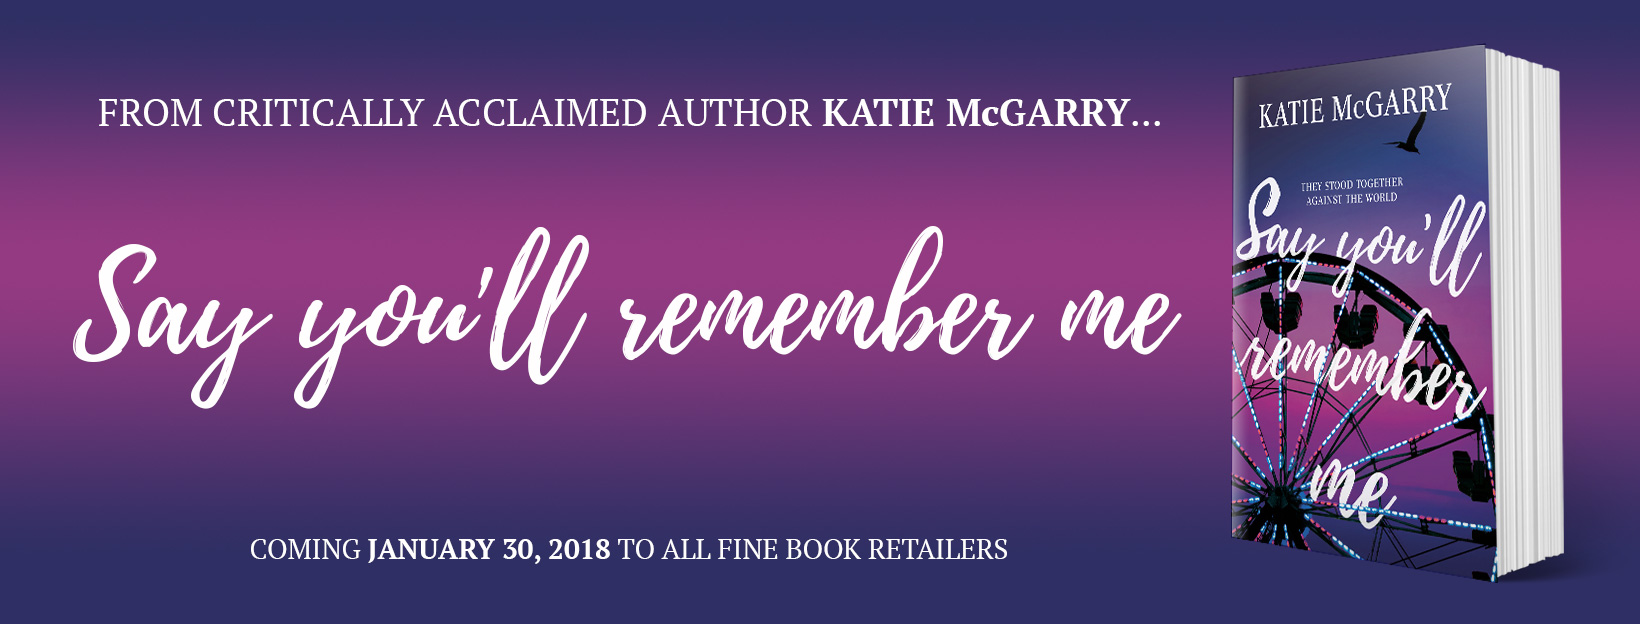 BOOK REVIEW & GIVEAWAY - Say You'll Remember Me by Katie McGarry